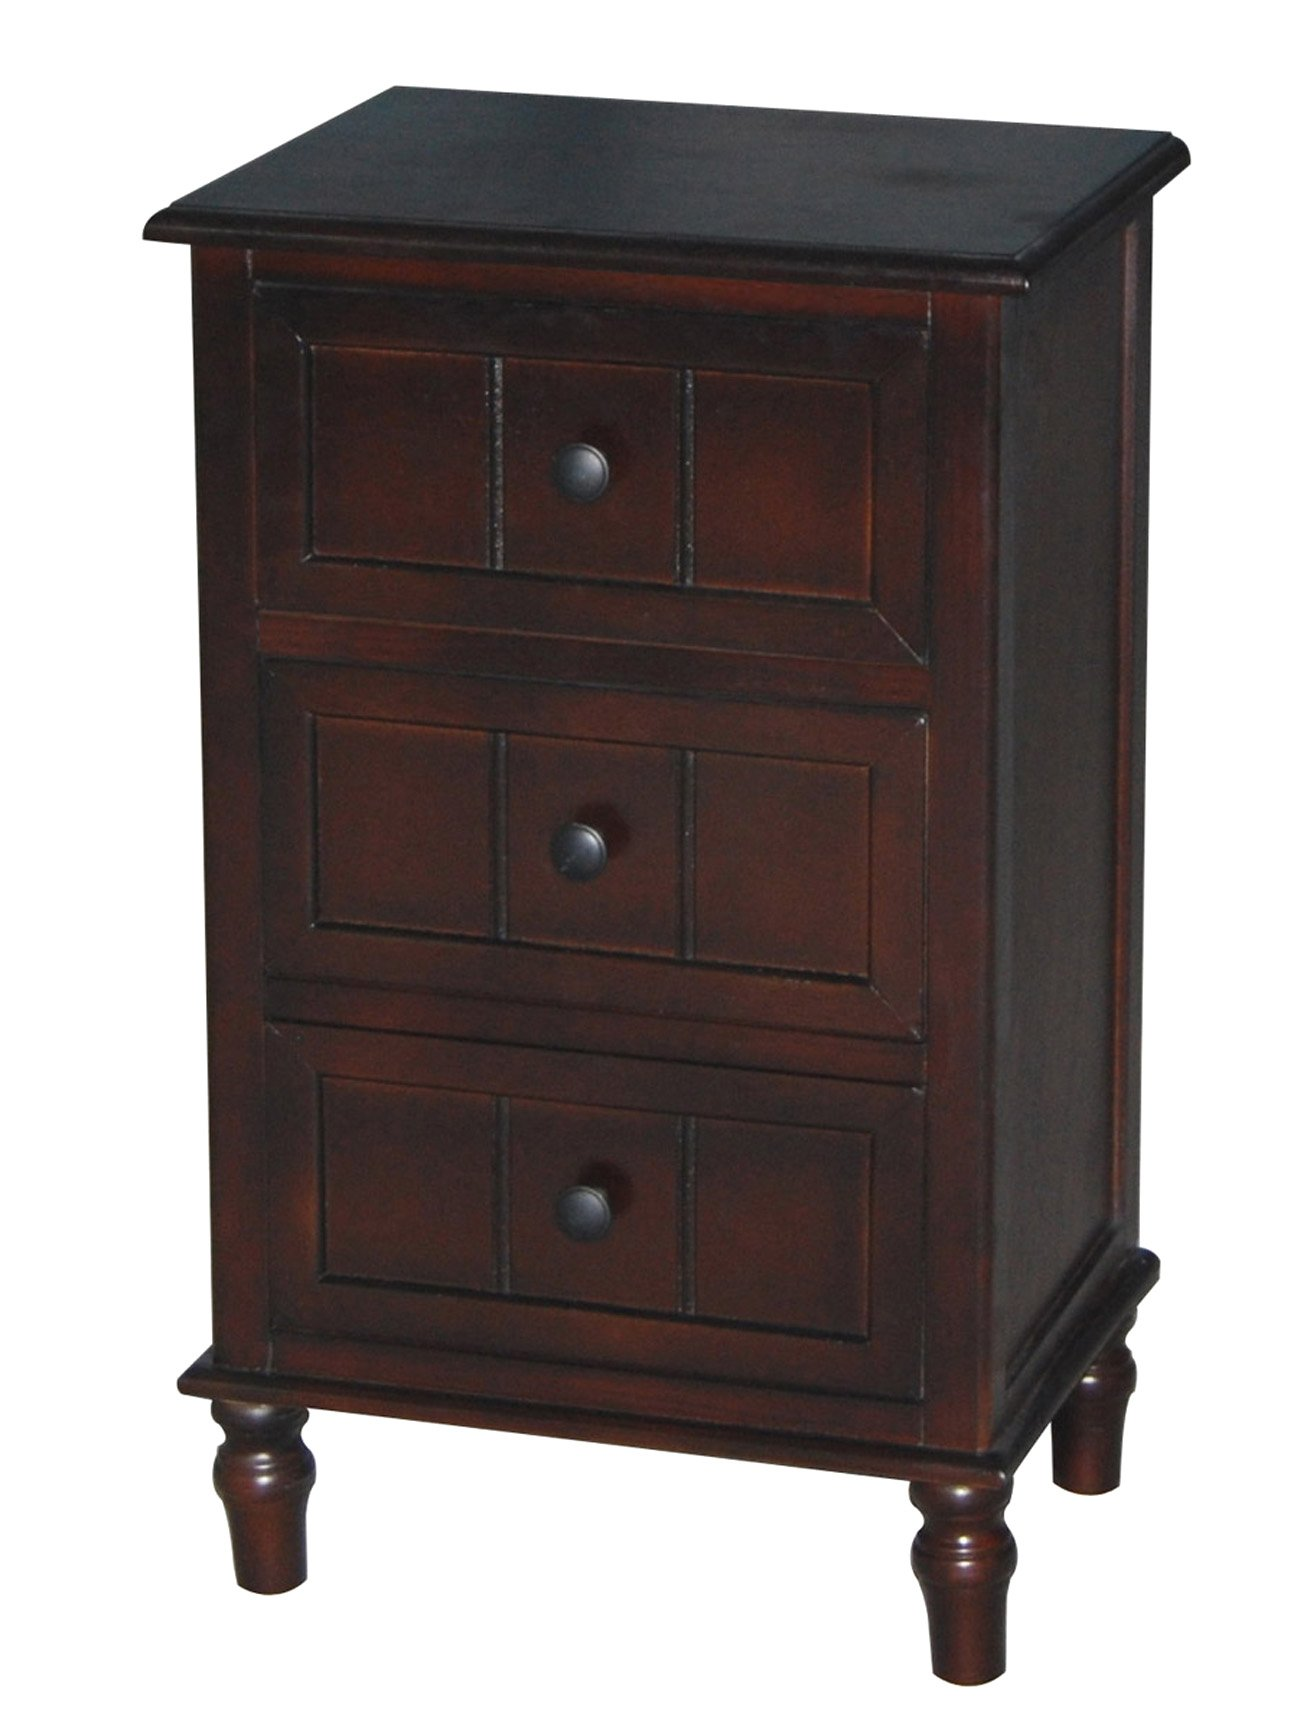 Décor Therapy FR1458 Three Drawer Accent Table, Cherry